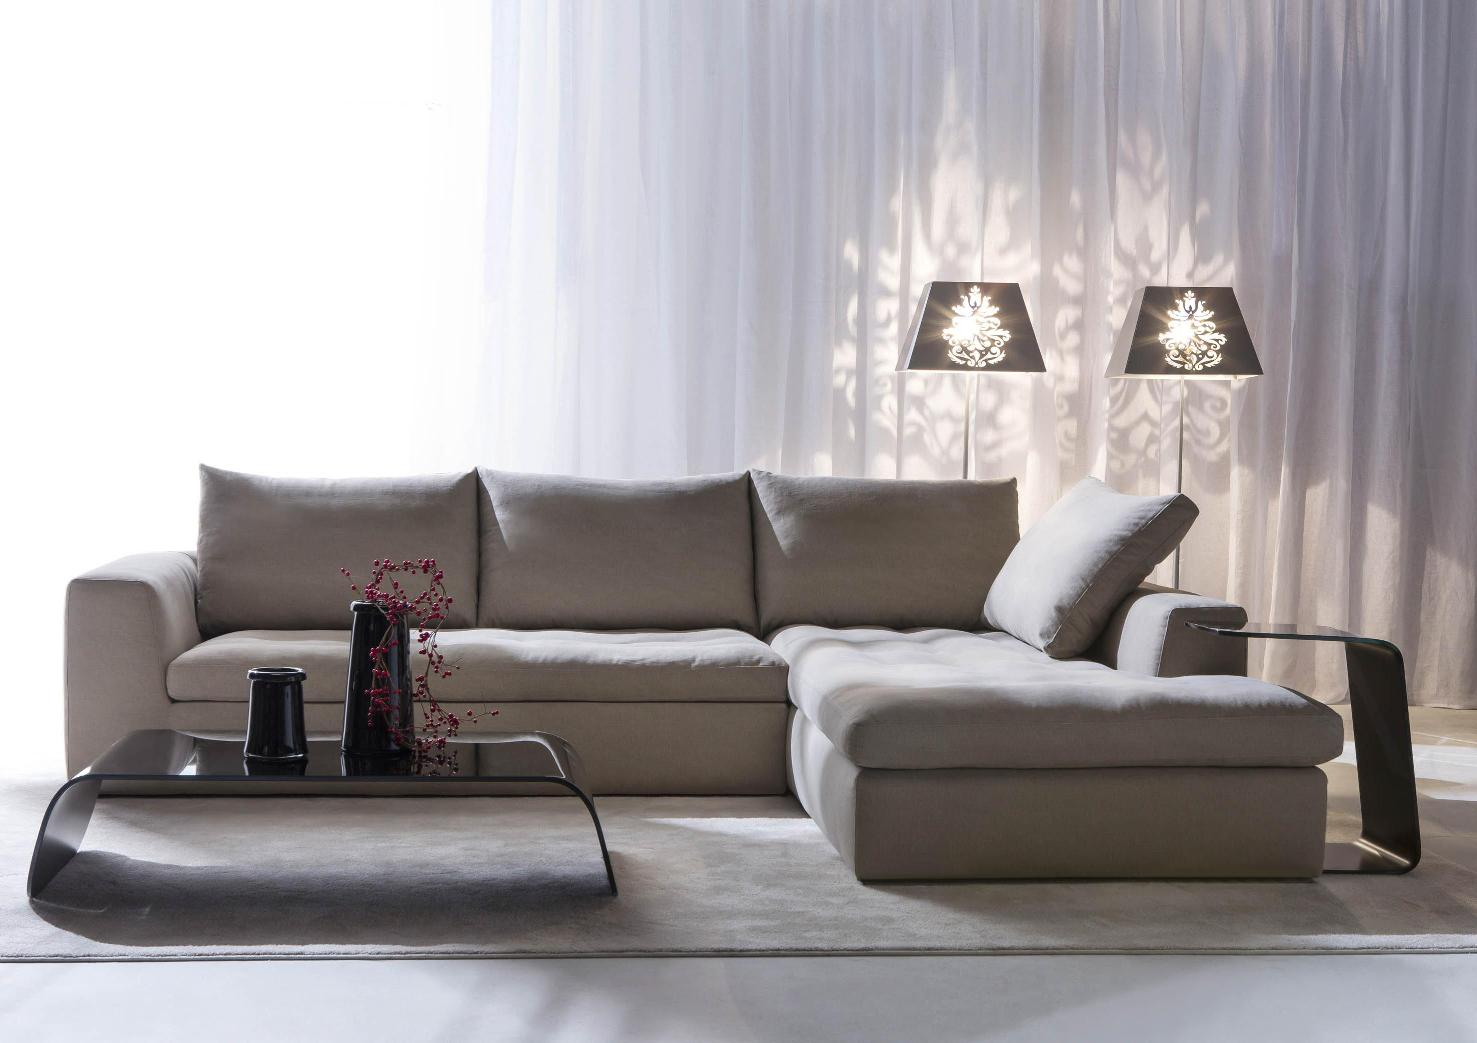 Stunning Creative Sofa Designs And Styles That Inspire 15